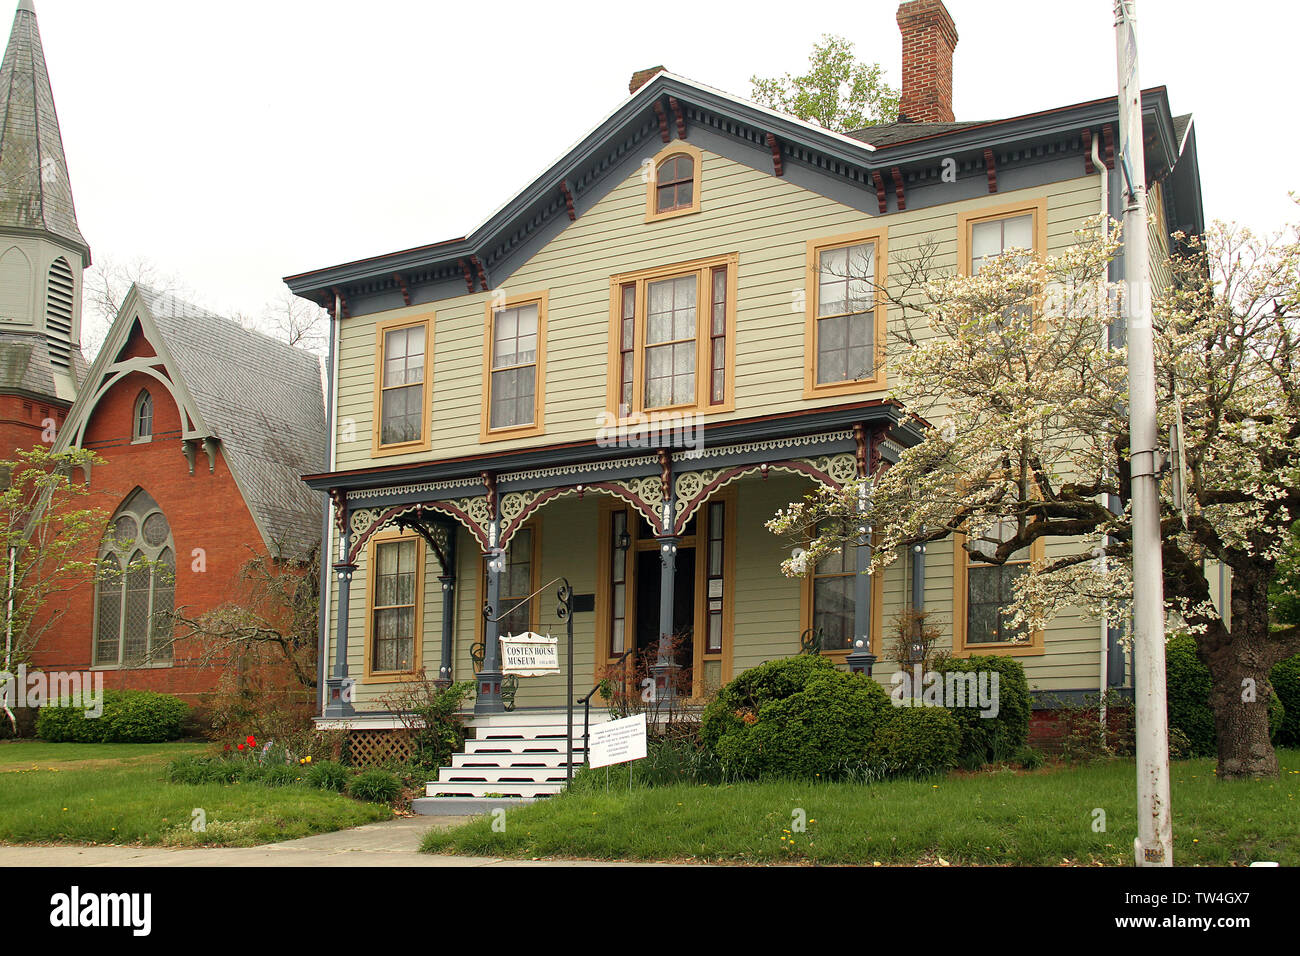 The Isaac Costen House Museum in Pocomoke, MD, USA - Stock Image